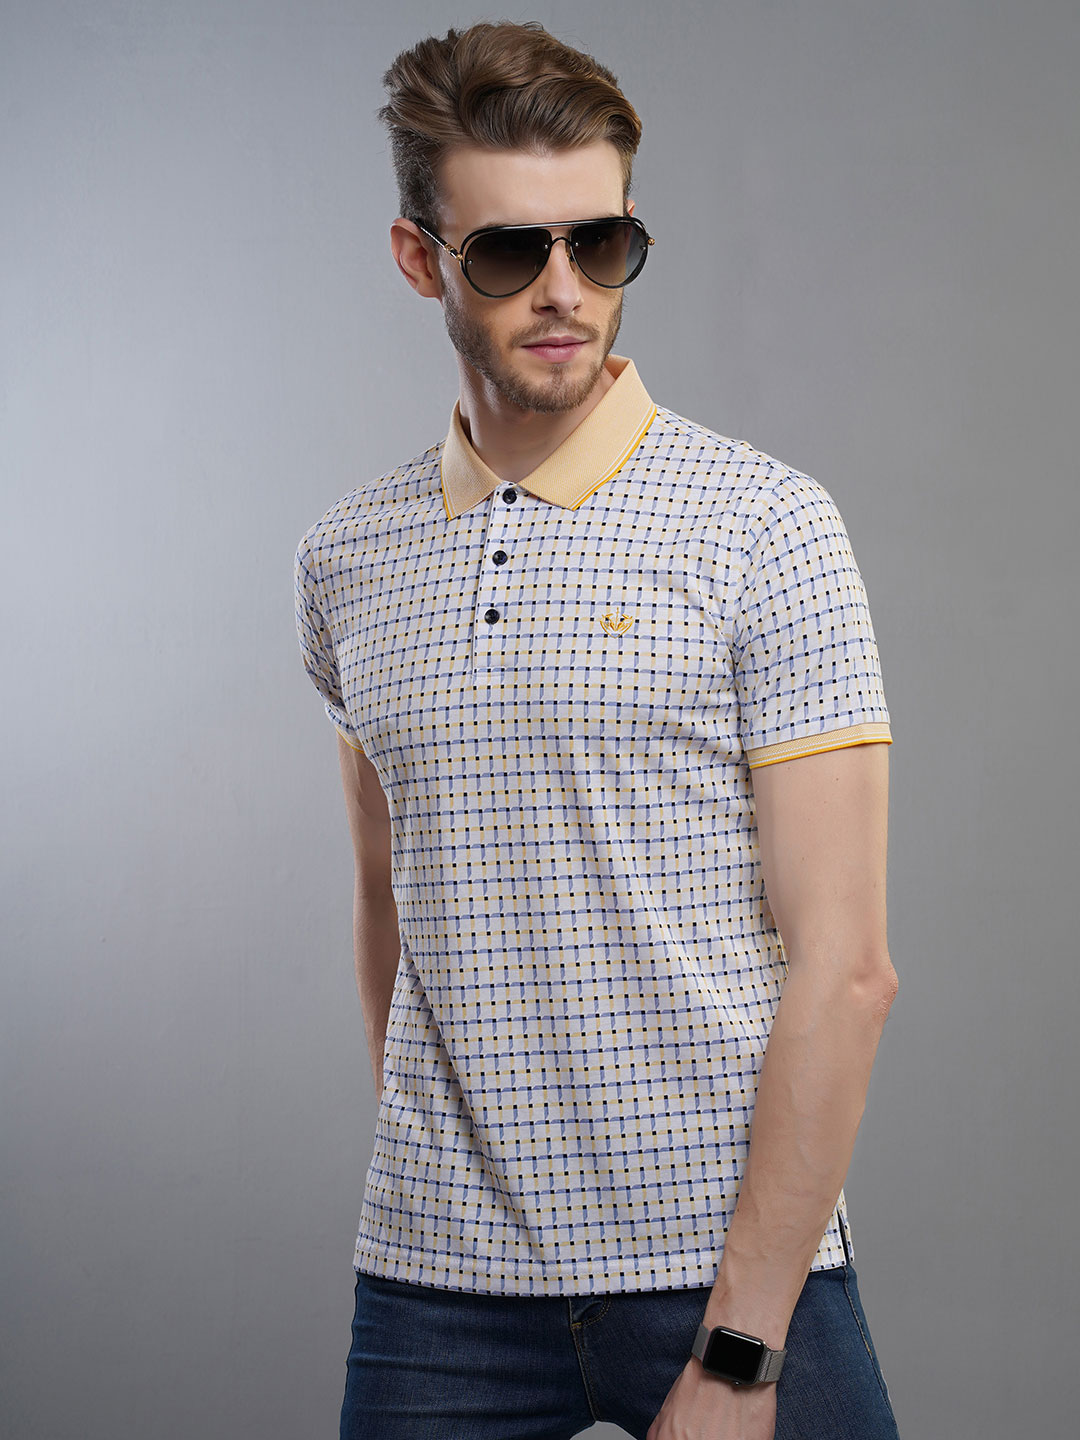 afe0c130d41 Psoulz off white and yellow checks pattern t-shirt - G3-MTS8095 ...